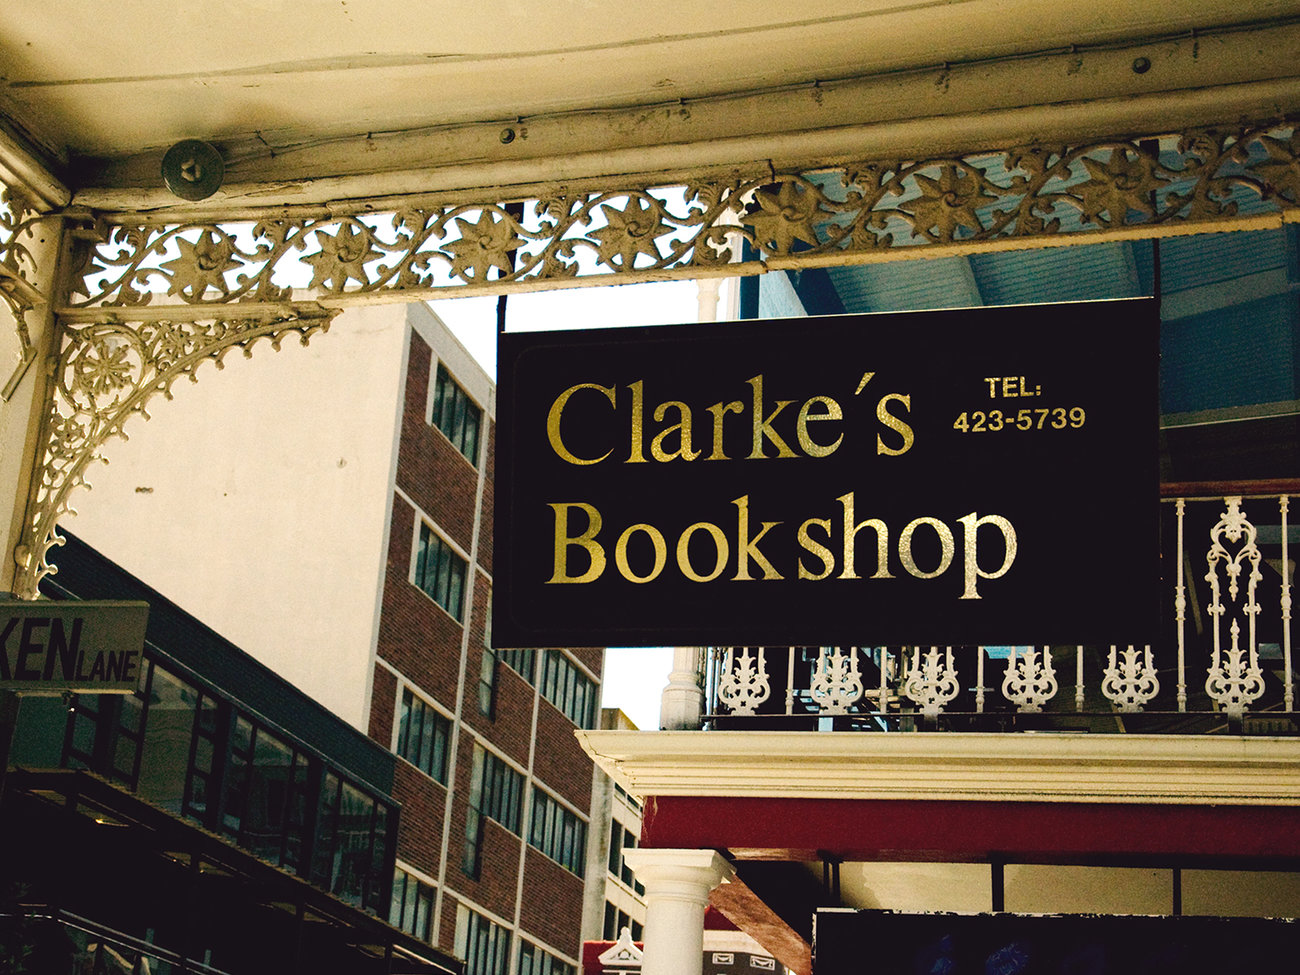 Clarke's Bookshop in Cape Town